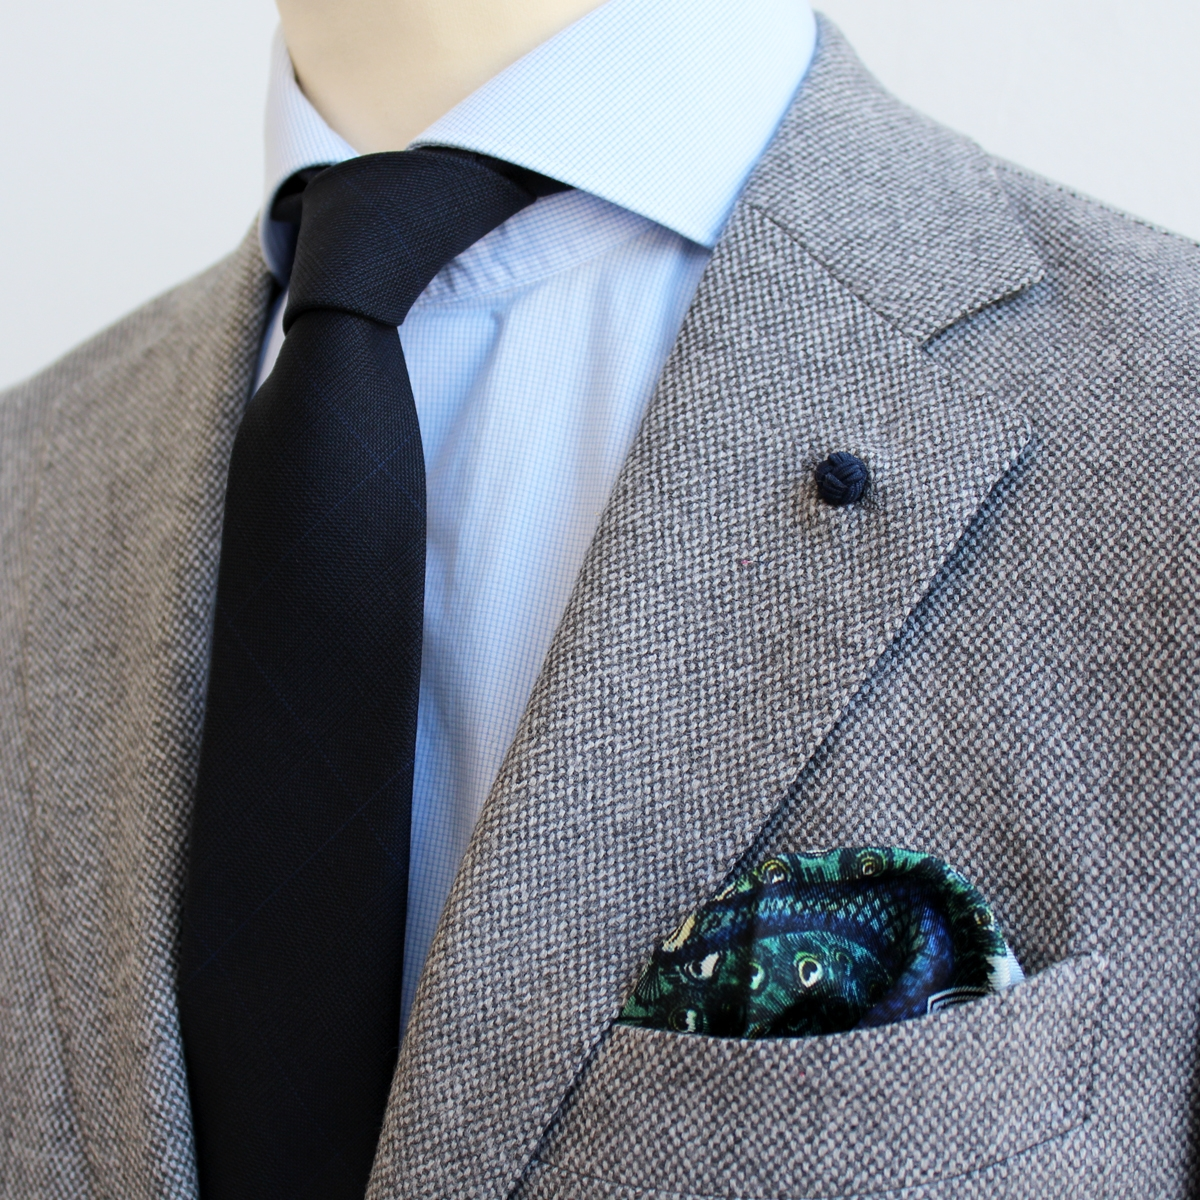 Rules to Combine Shirt and Tie